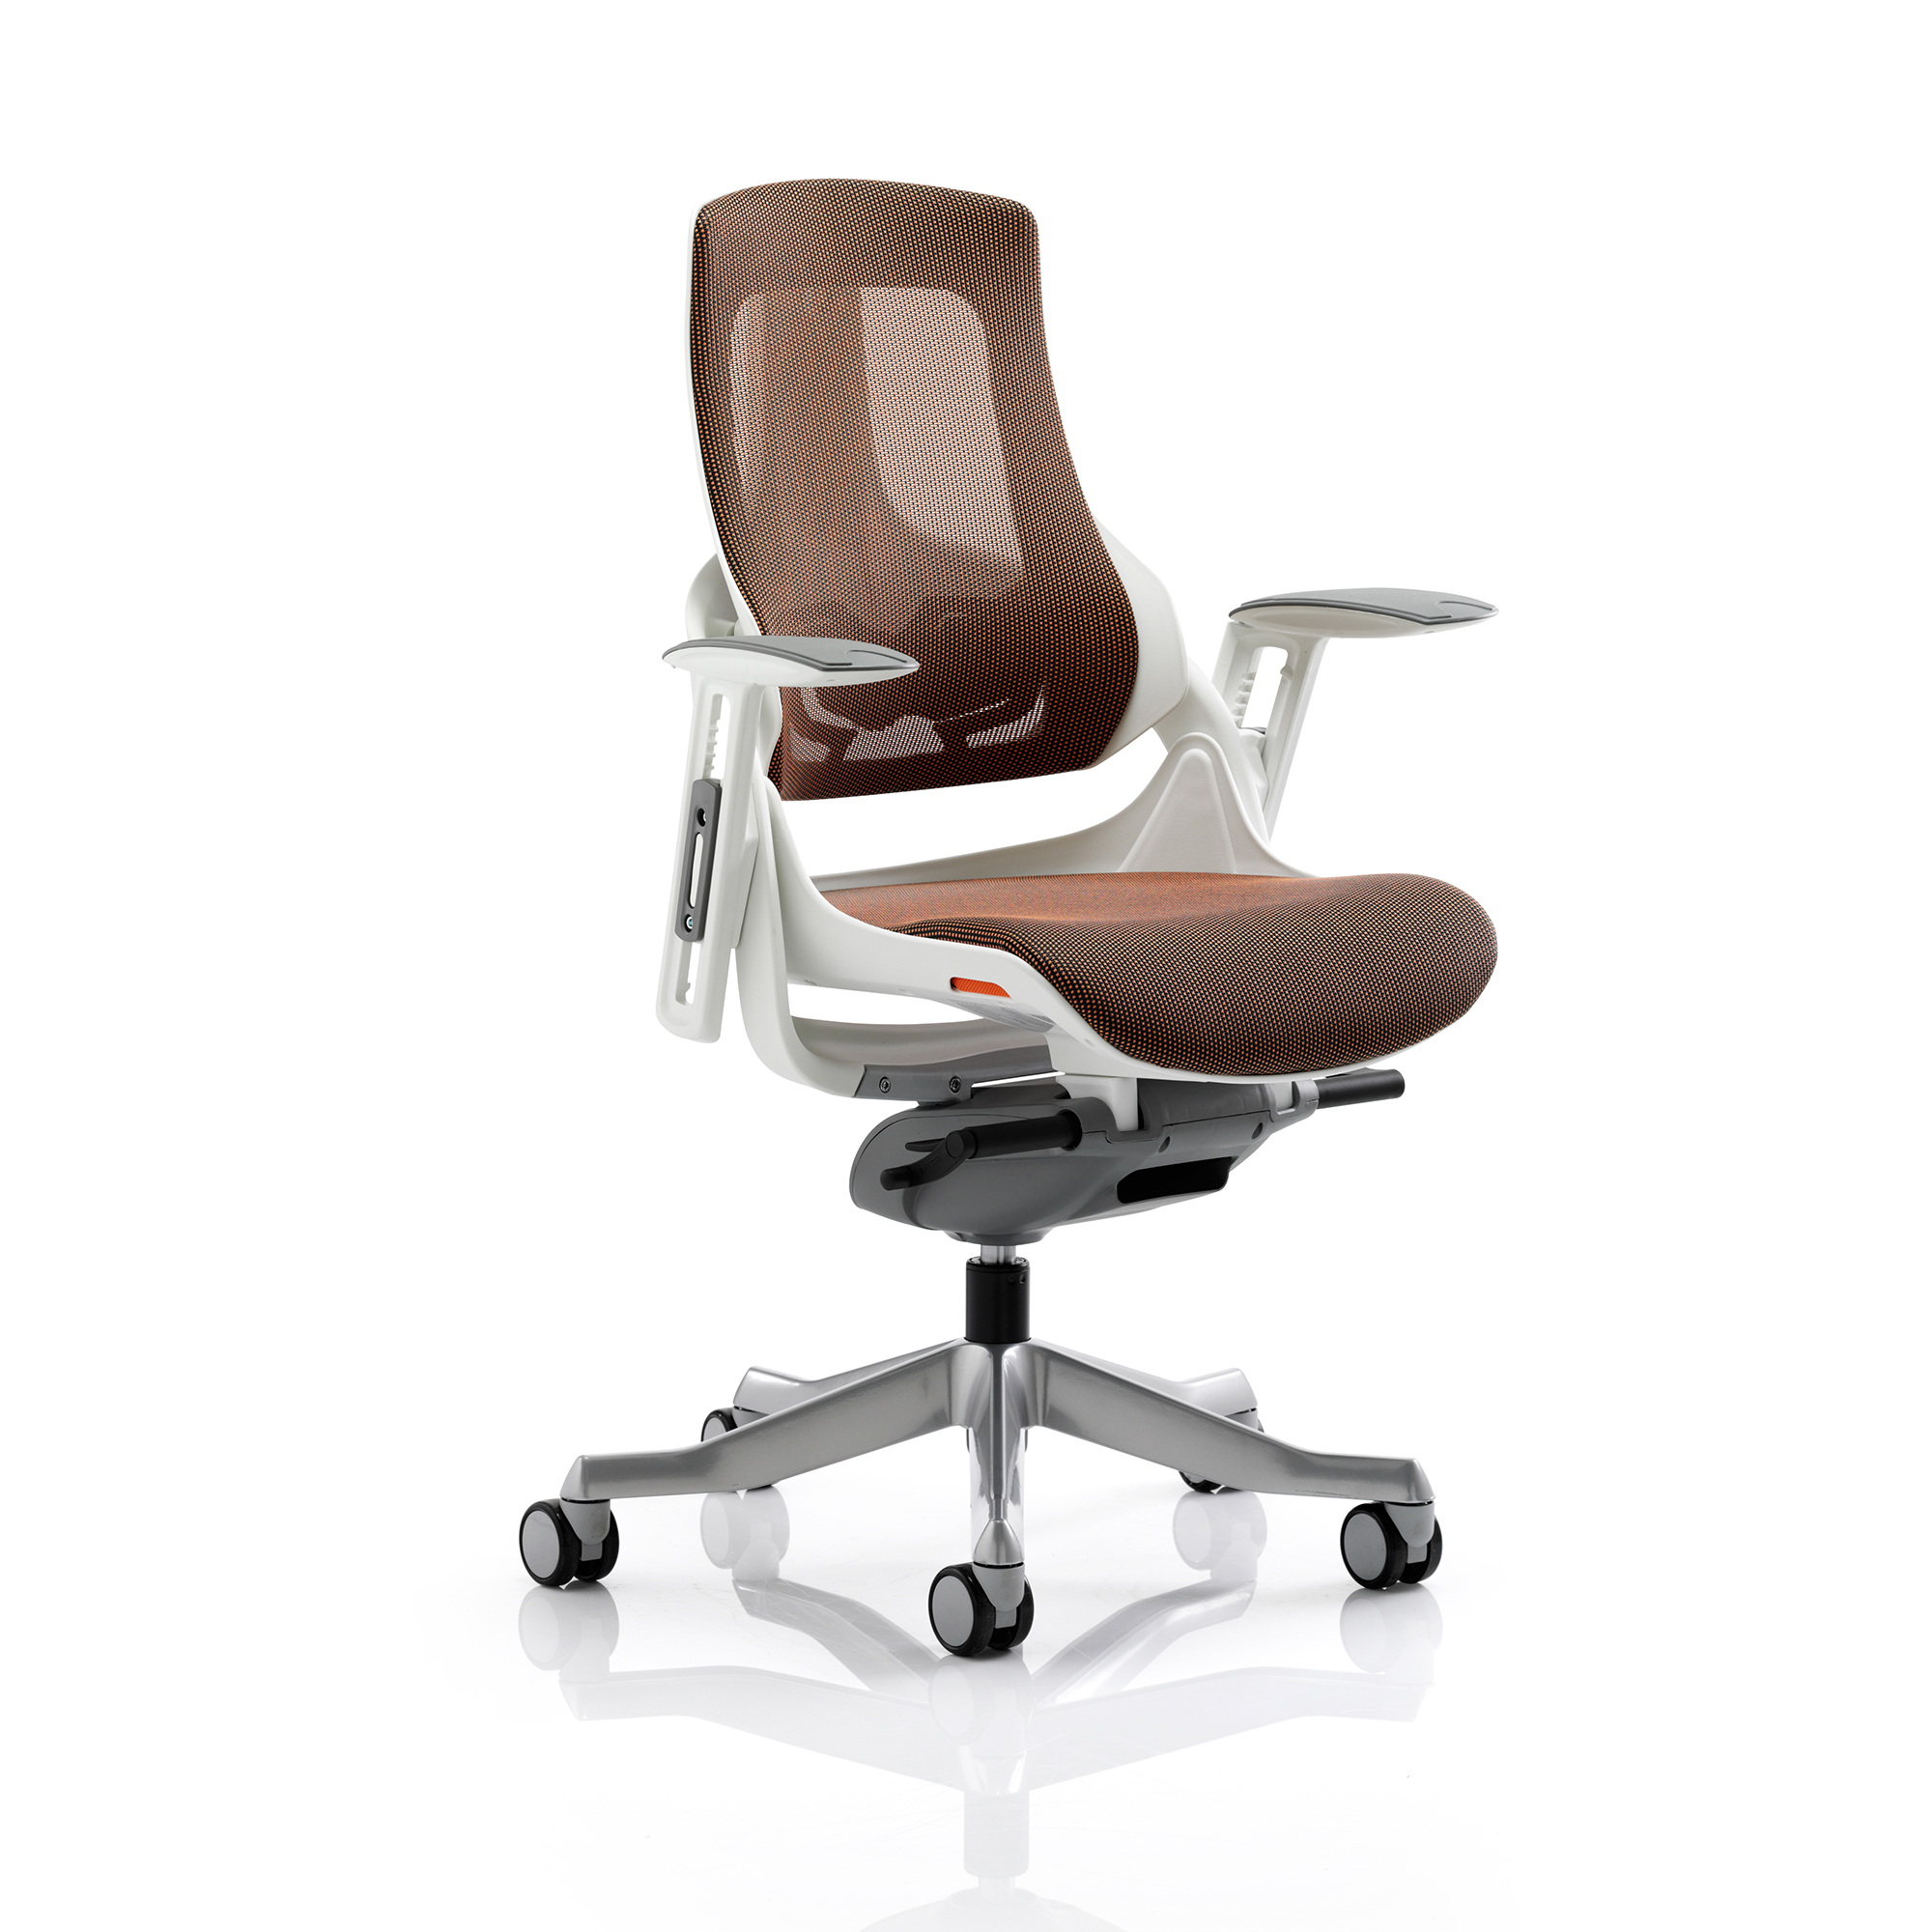 Executive seating Adroit Zure Executive Chair With Arms Mesh Mandarin Ref EX000113